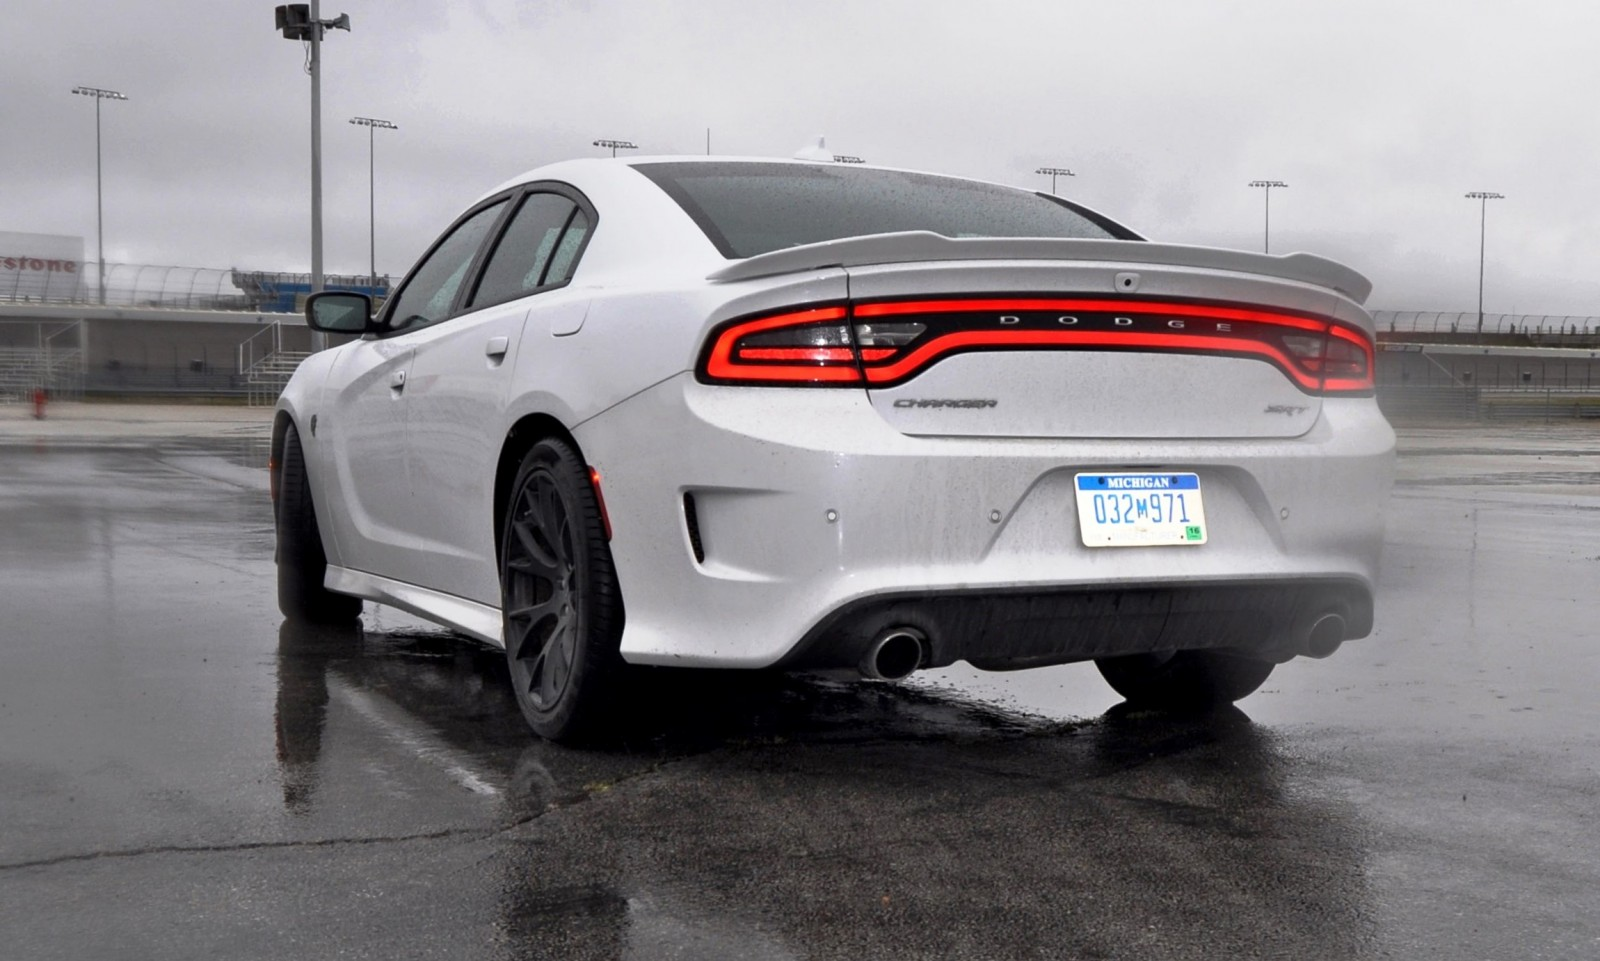 Elegant 2015 Dodge Charger SRT HELLCAT Review